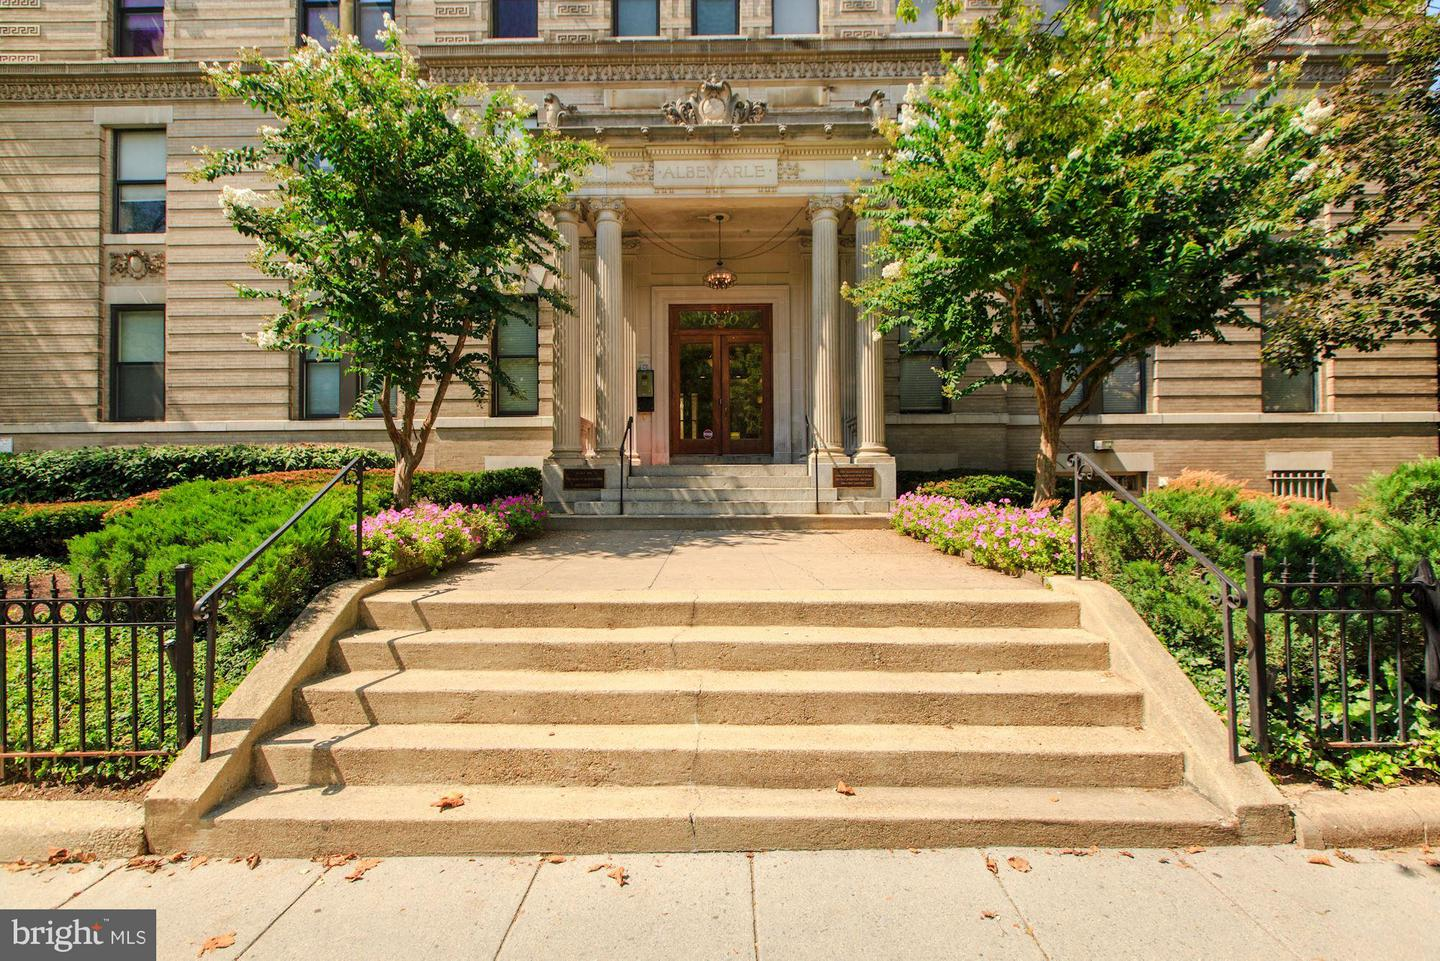 Single Family Home for Sale at 1830 17th St Nw #707 1830 17th St Nw #707 Washington, District Of Columbia 20009 United States